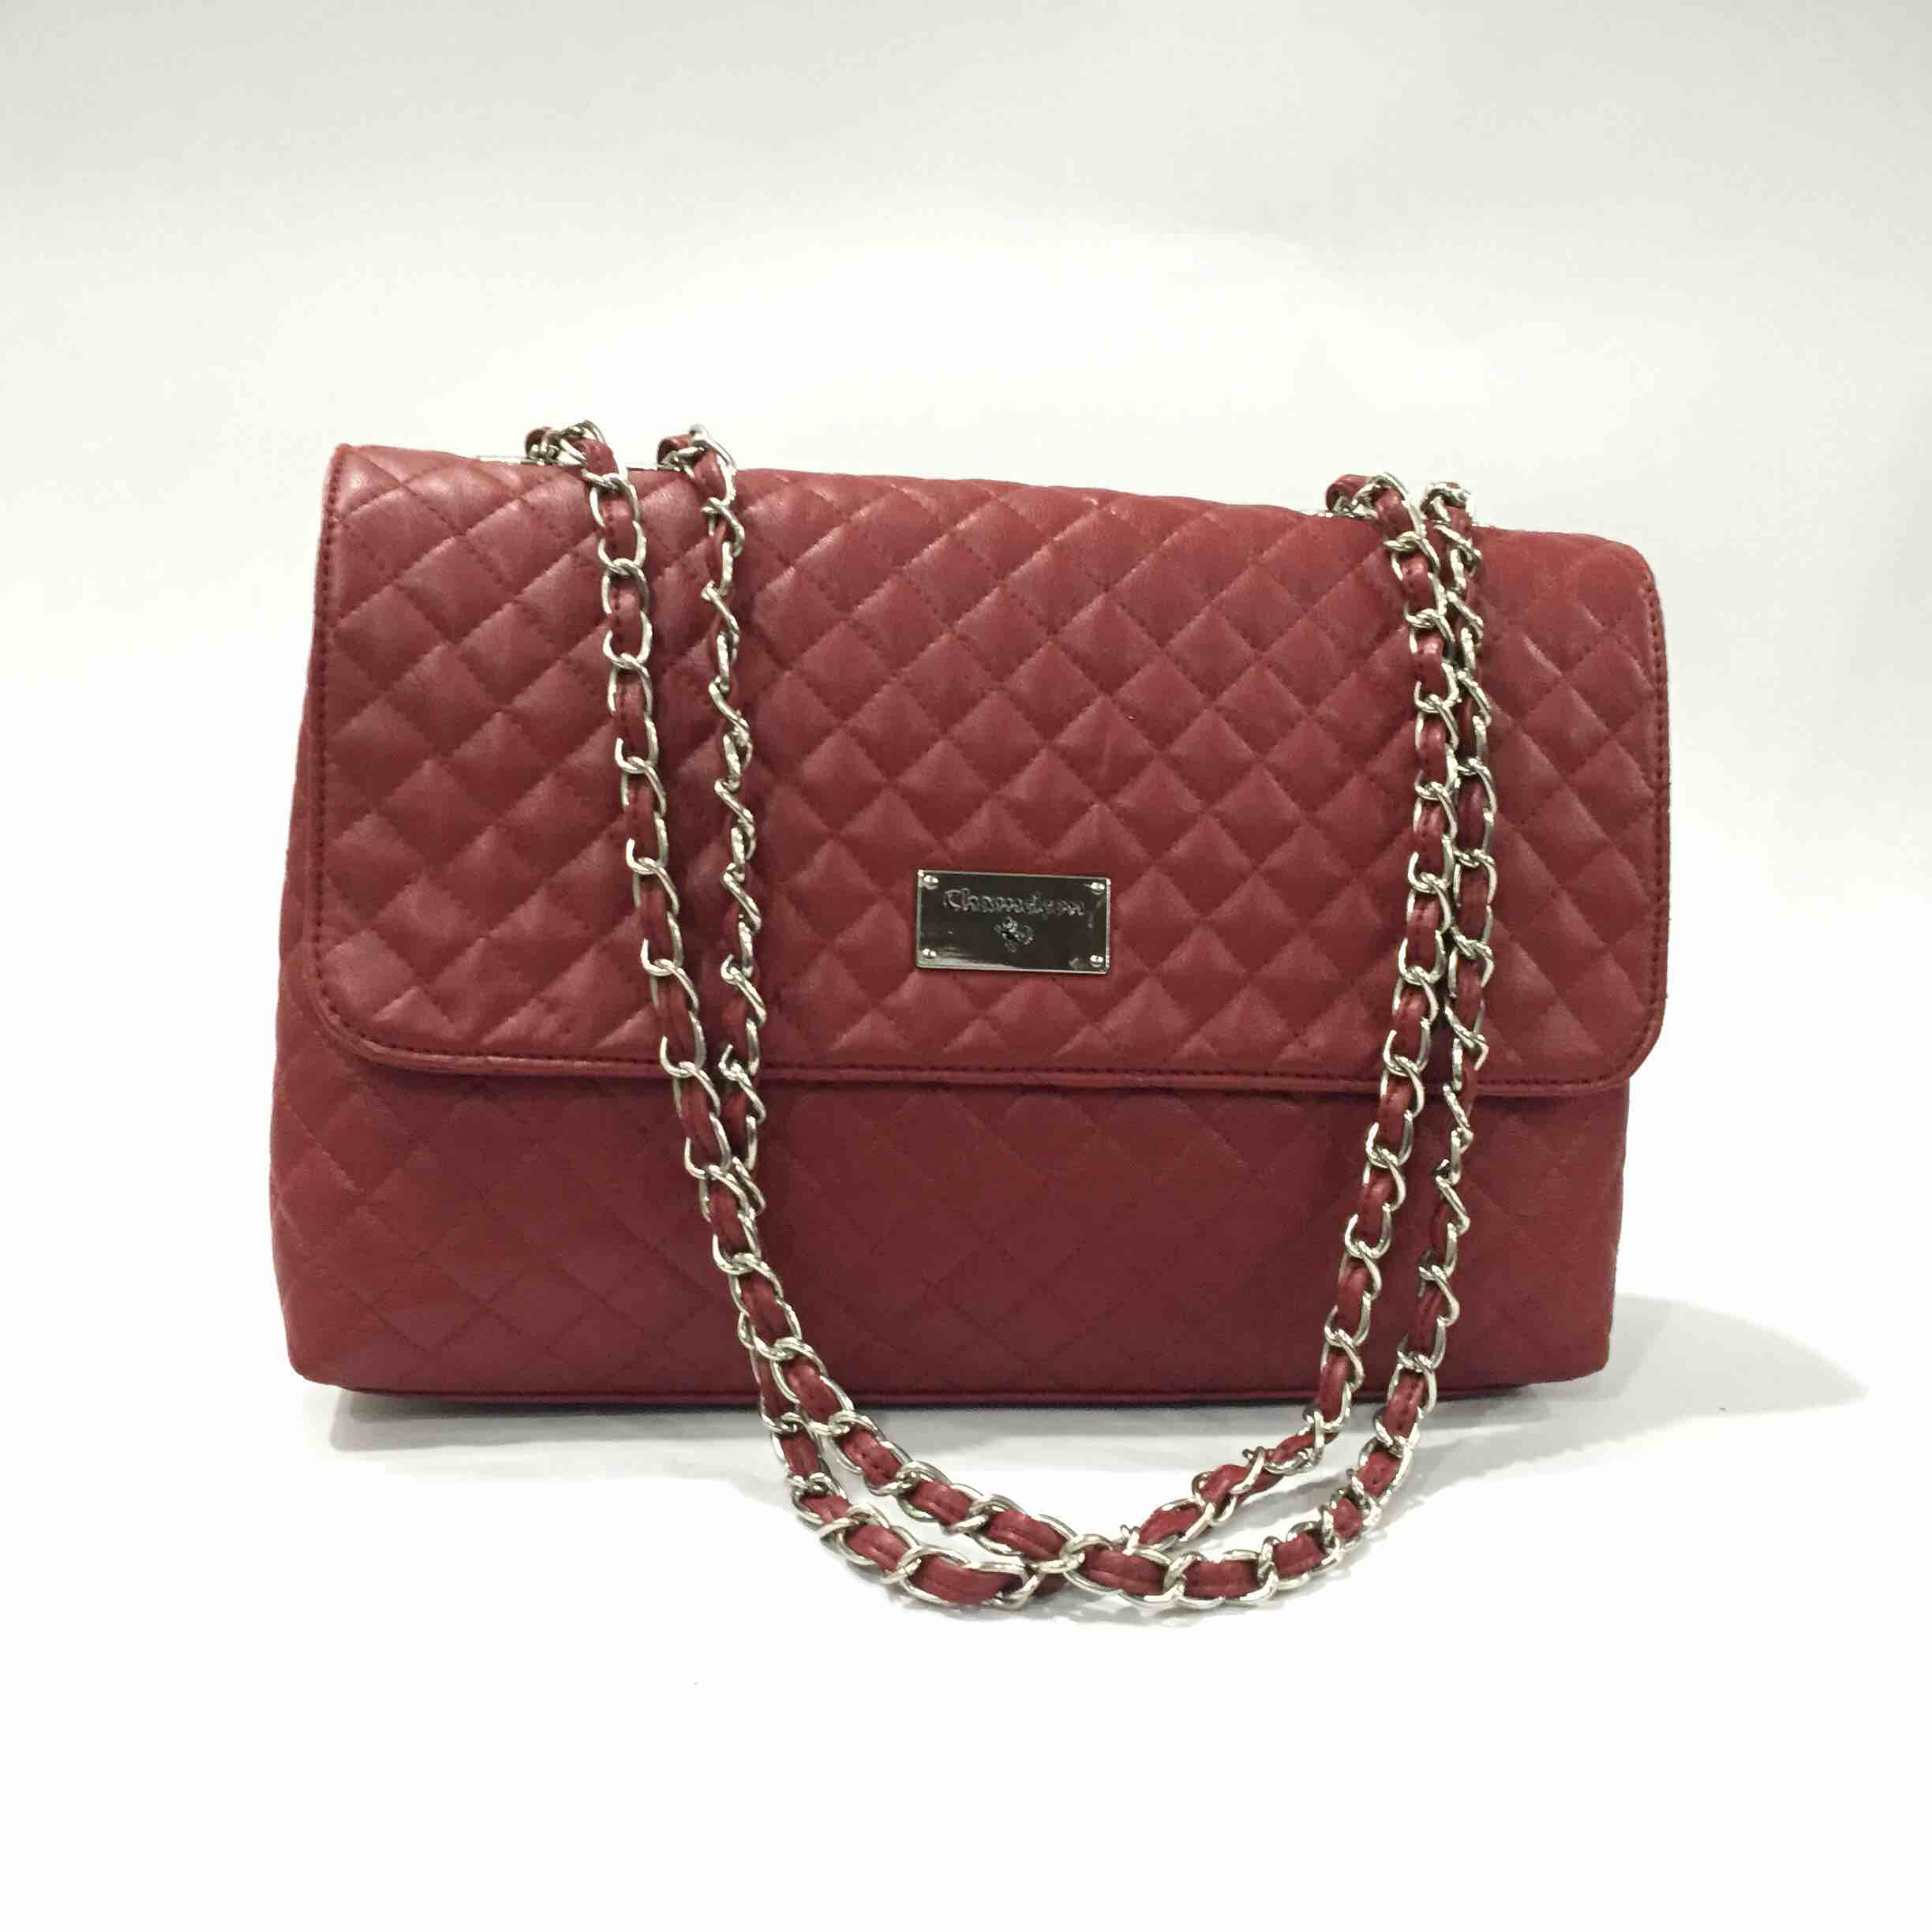 Chameleon Leather Accessories